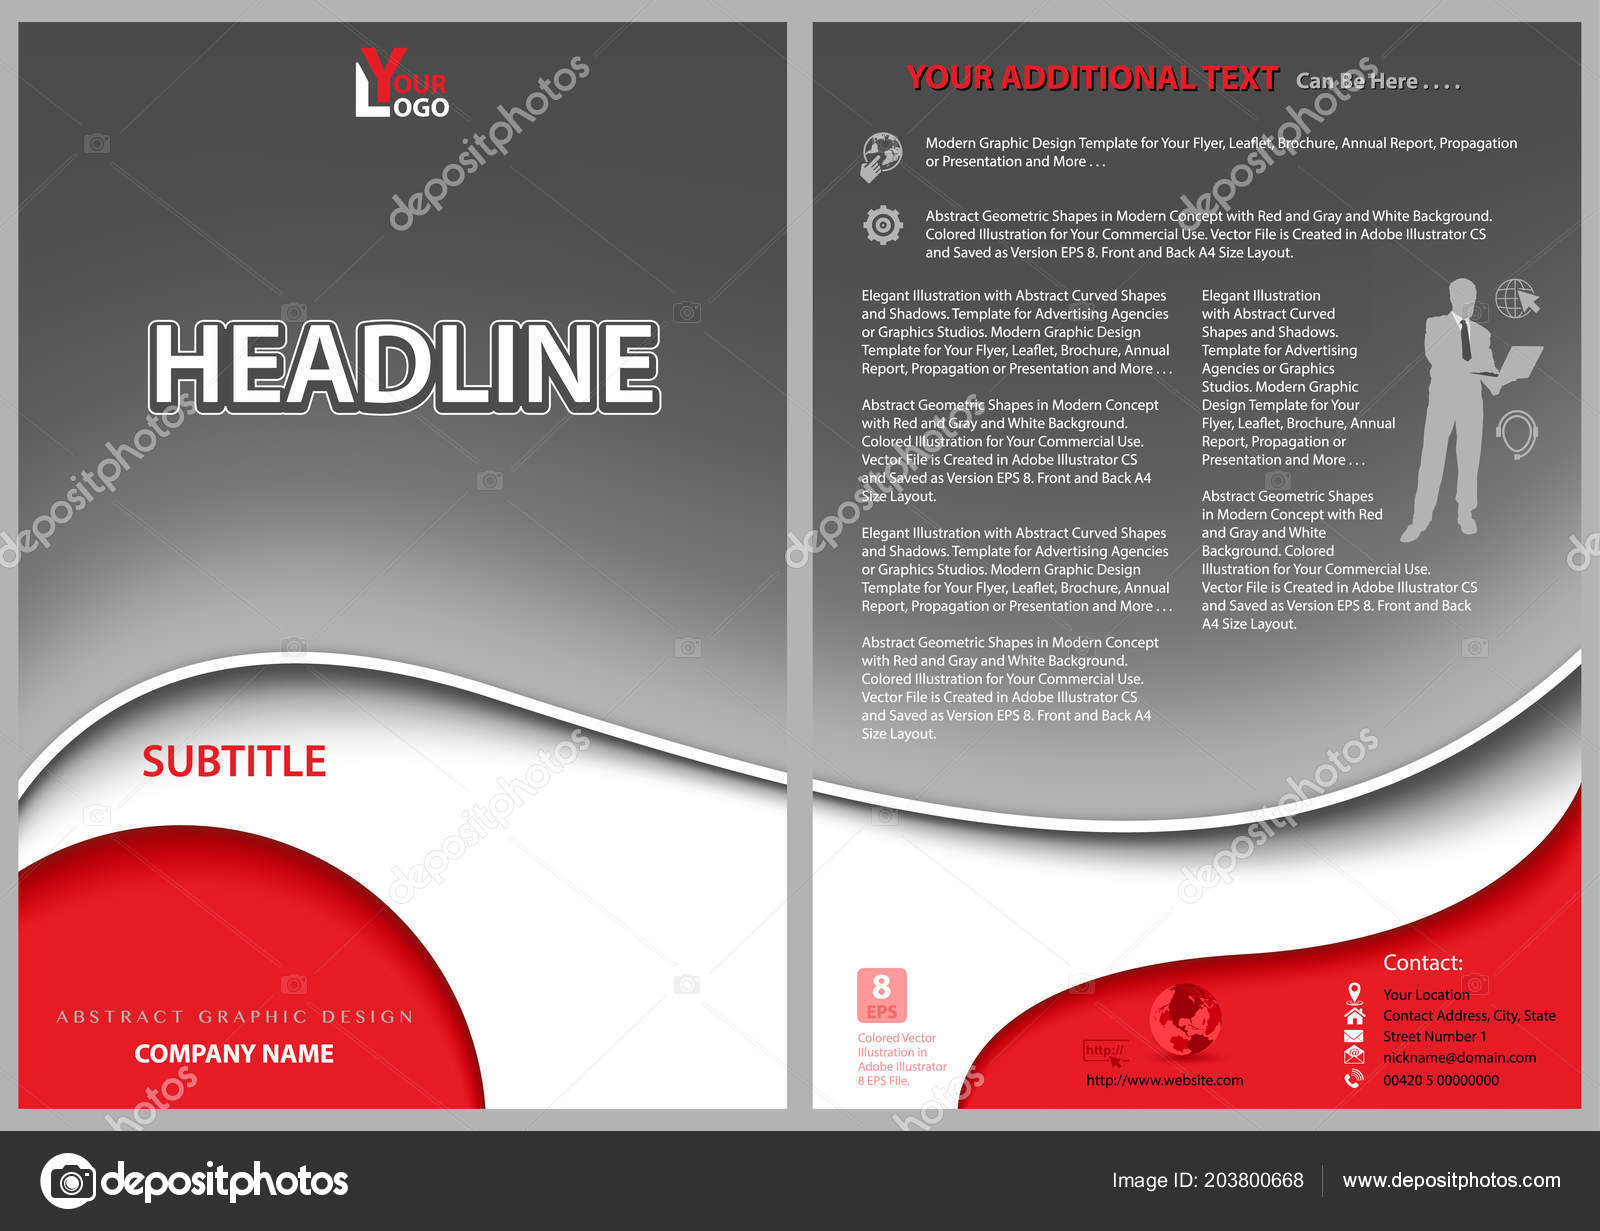 Leaflet Template Gray Wavy Background Red Decorative Shapes White